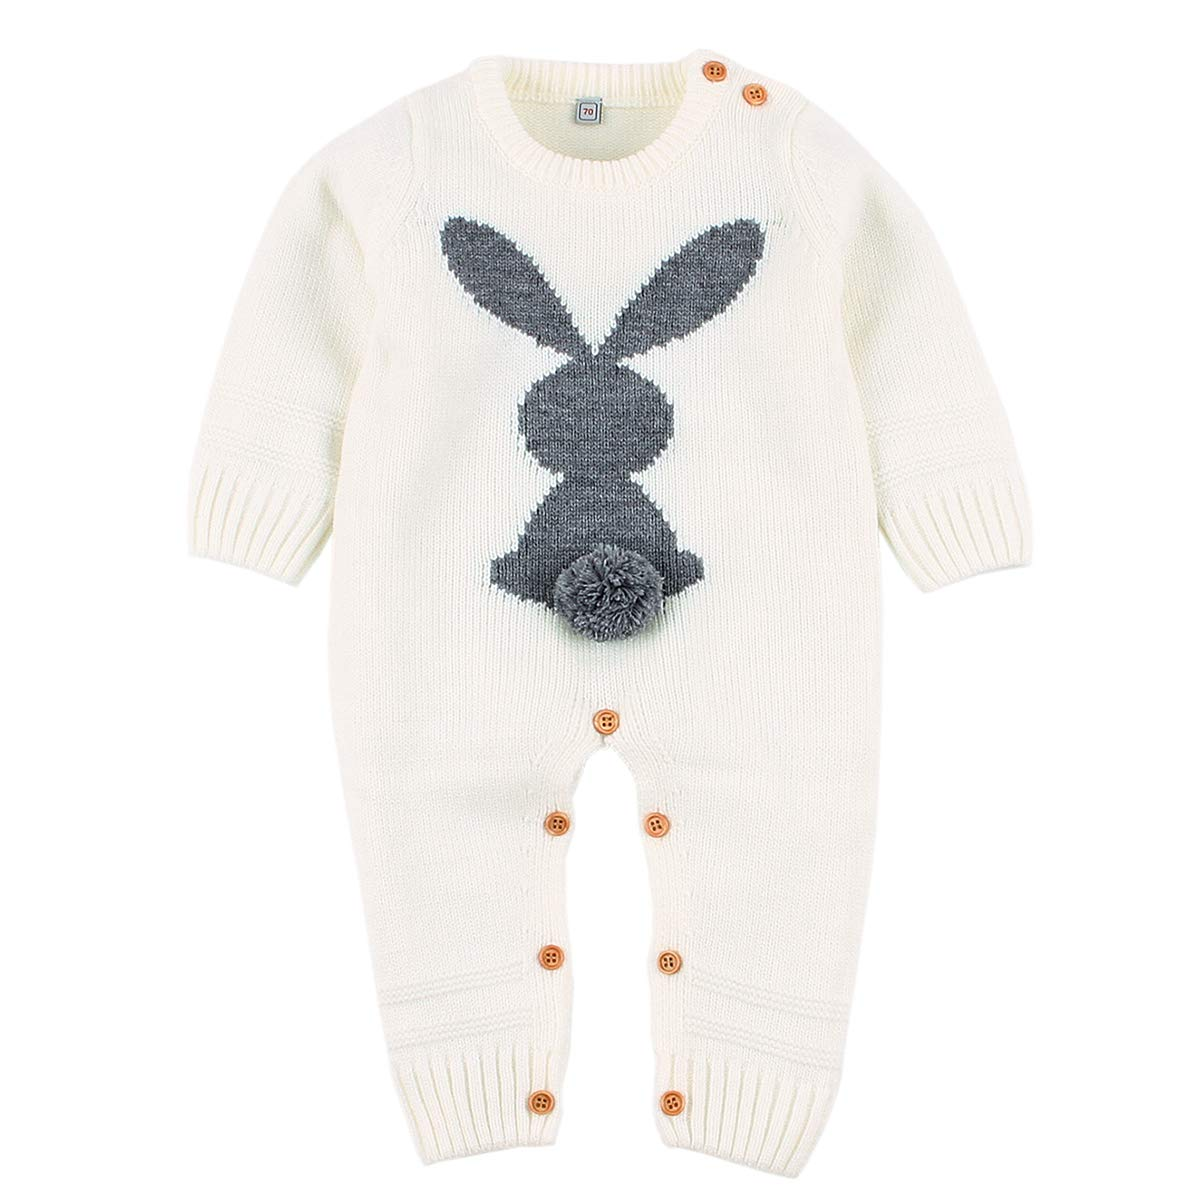 Baby Girls Boys Rompers Cute Rabbit Bunny Knitted Long Sleeve Jumpsuit One Piece Autumn Winter Kids Clothing